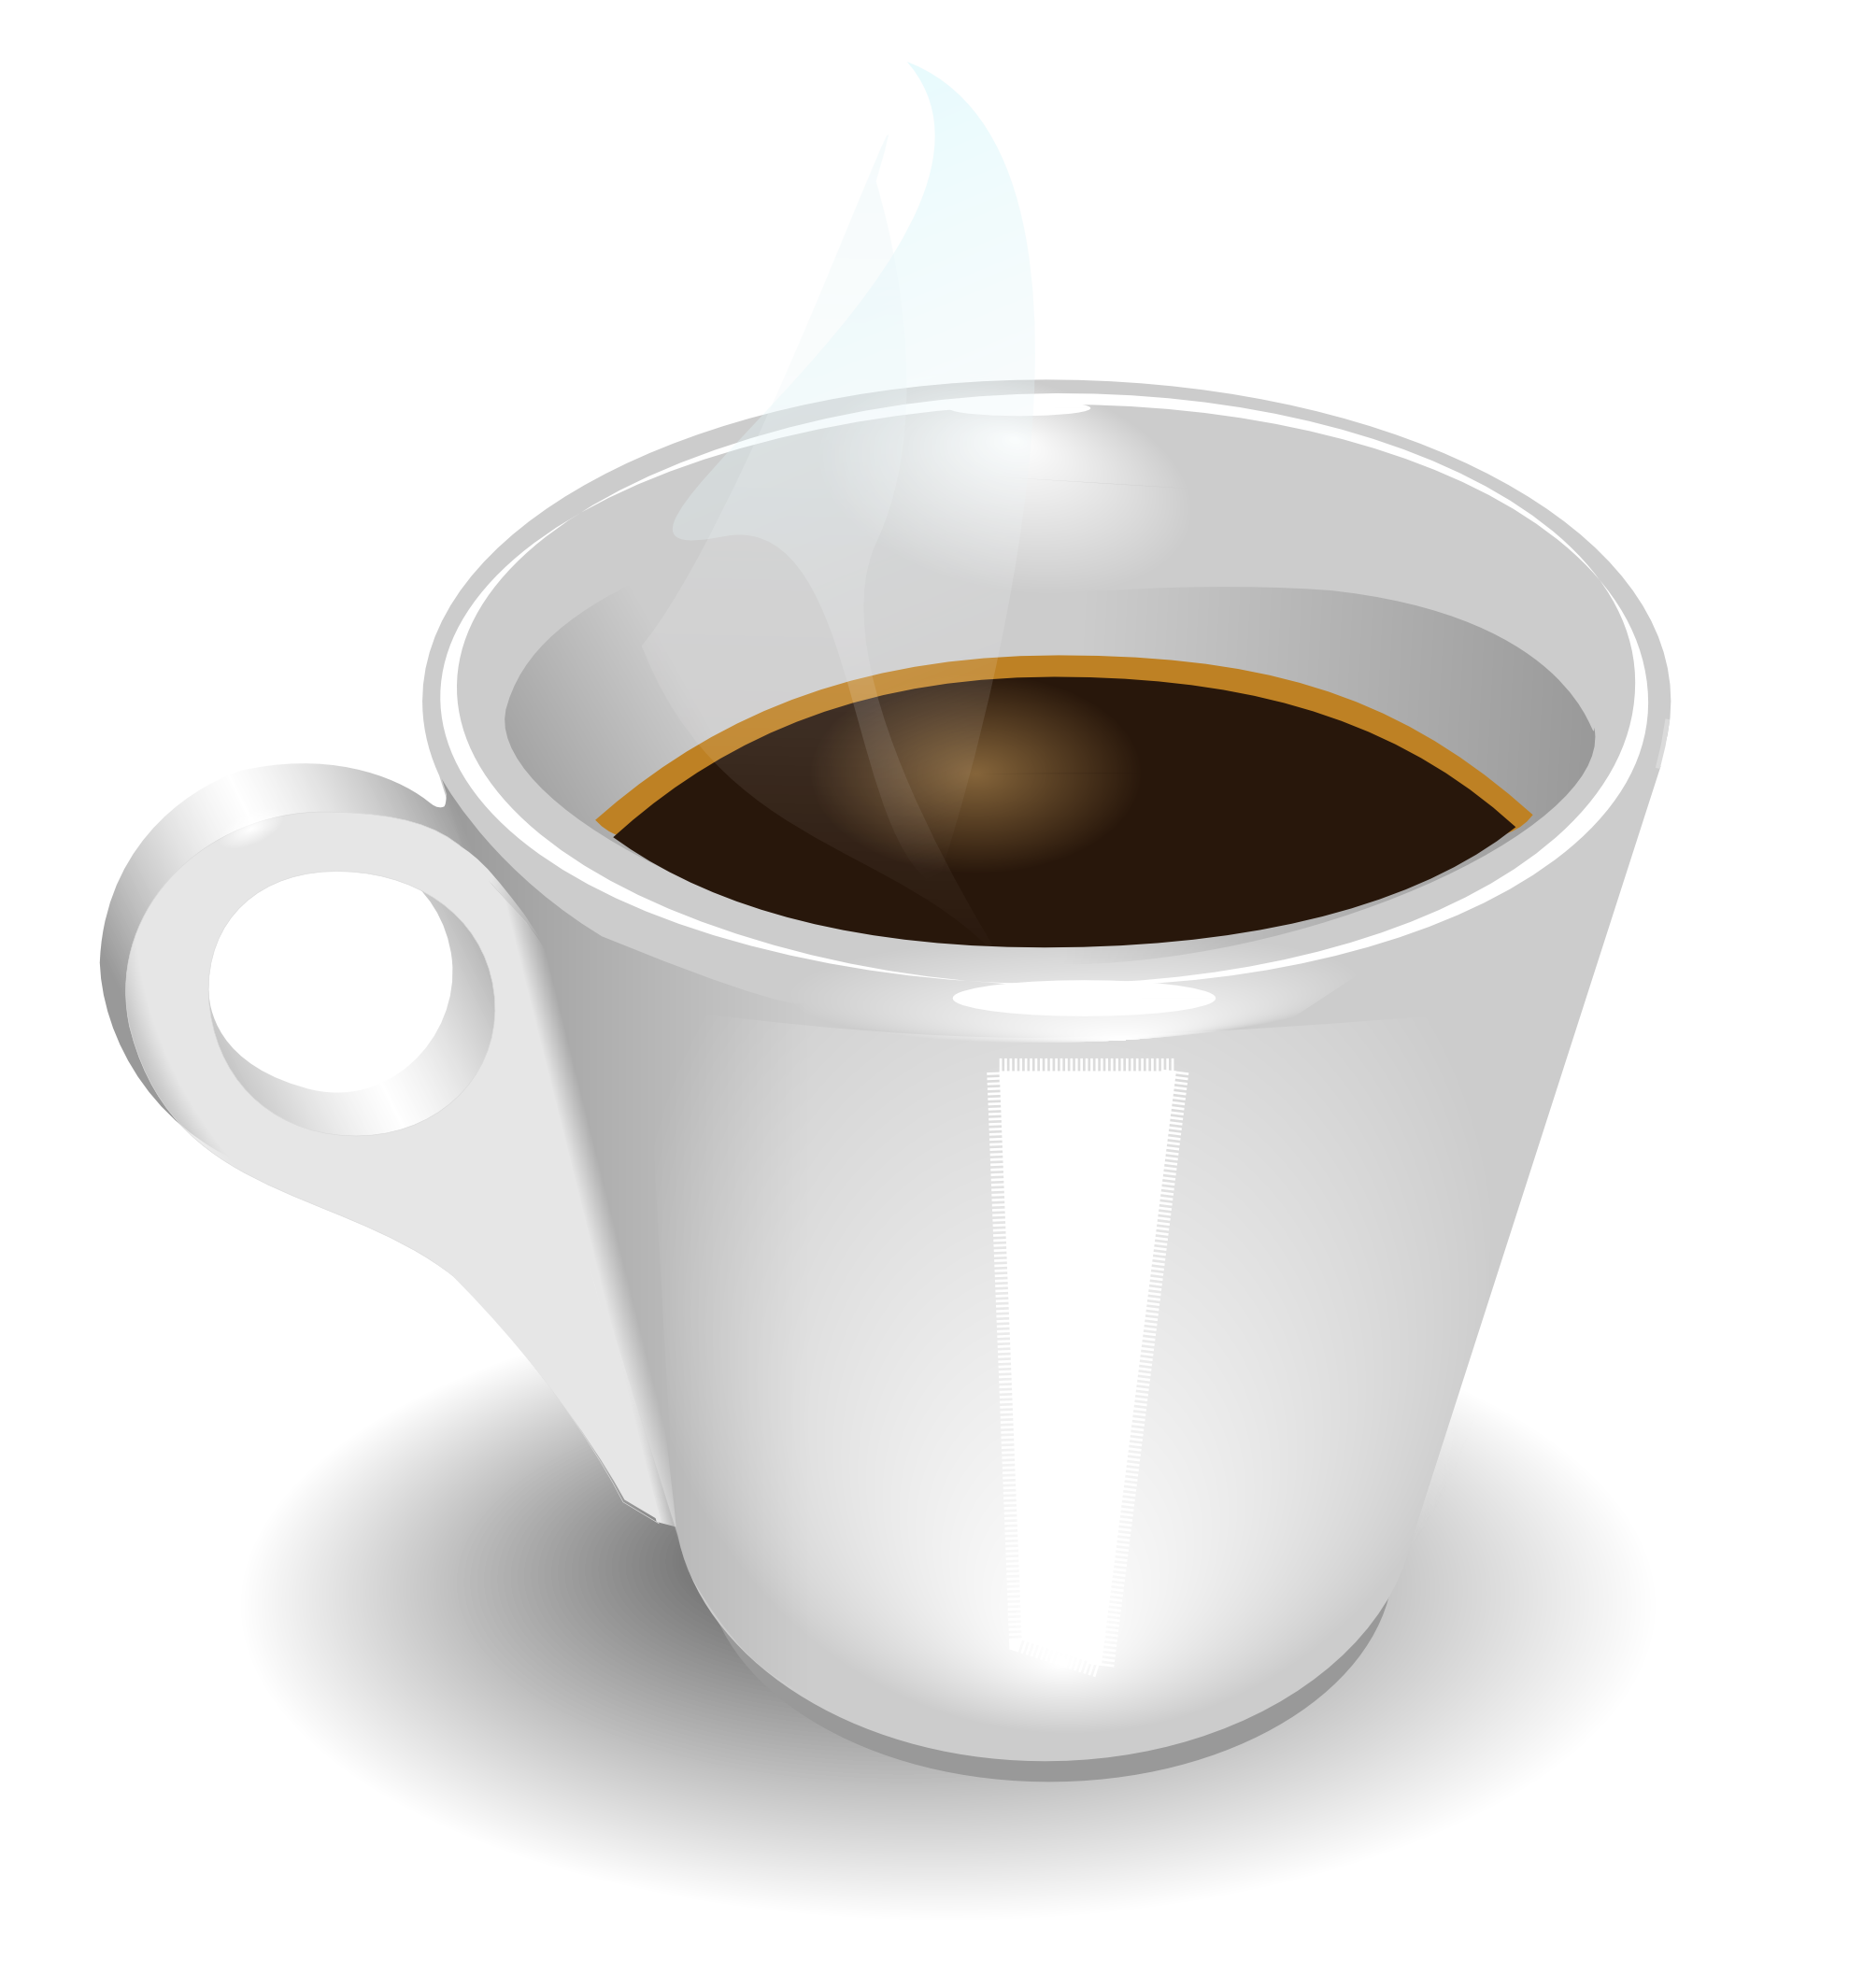 coffee cup png clear background